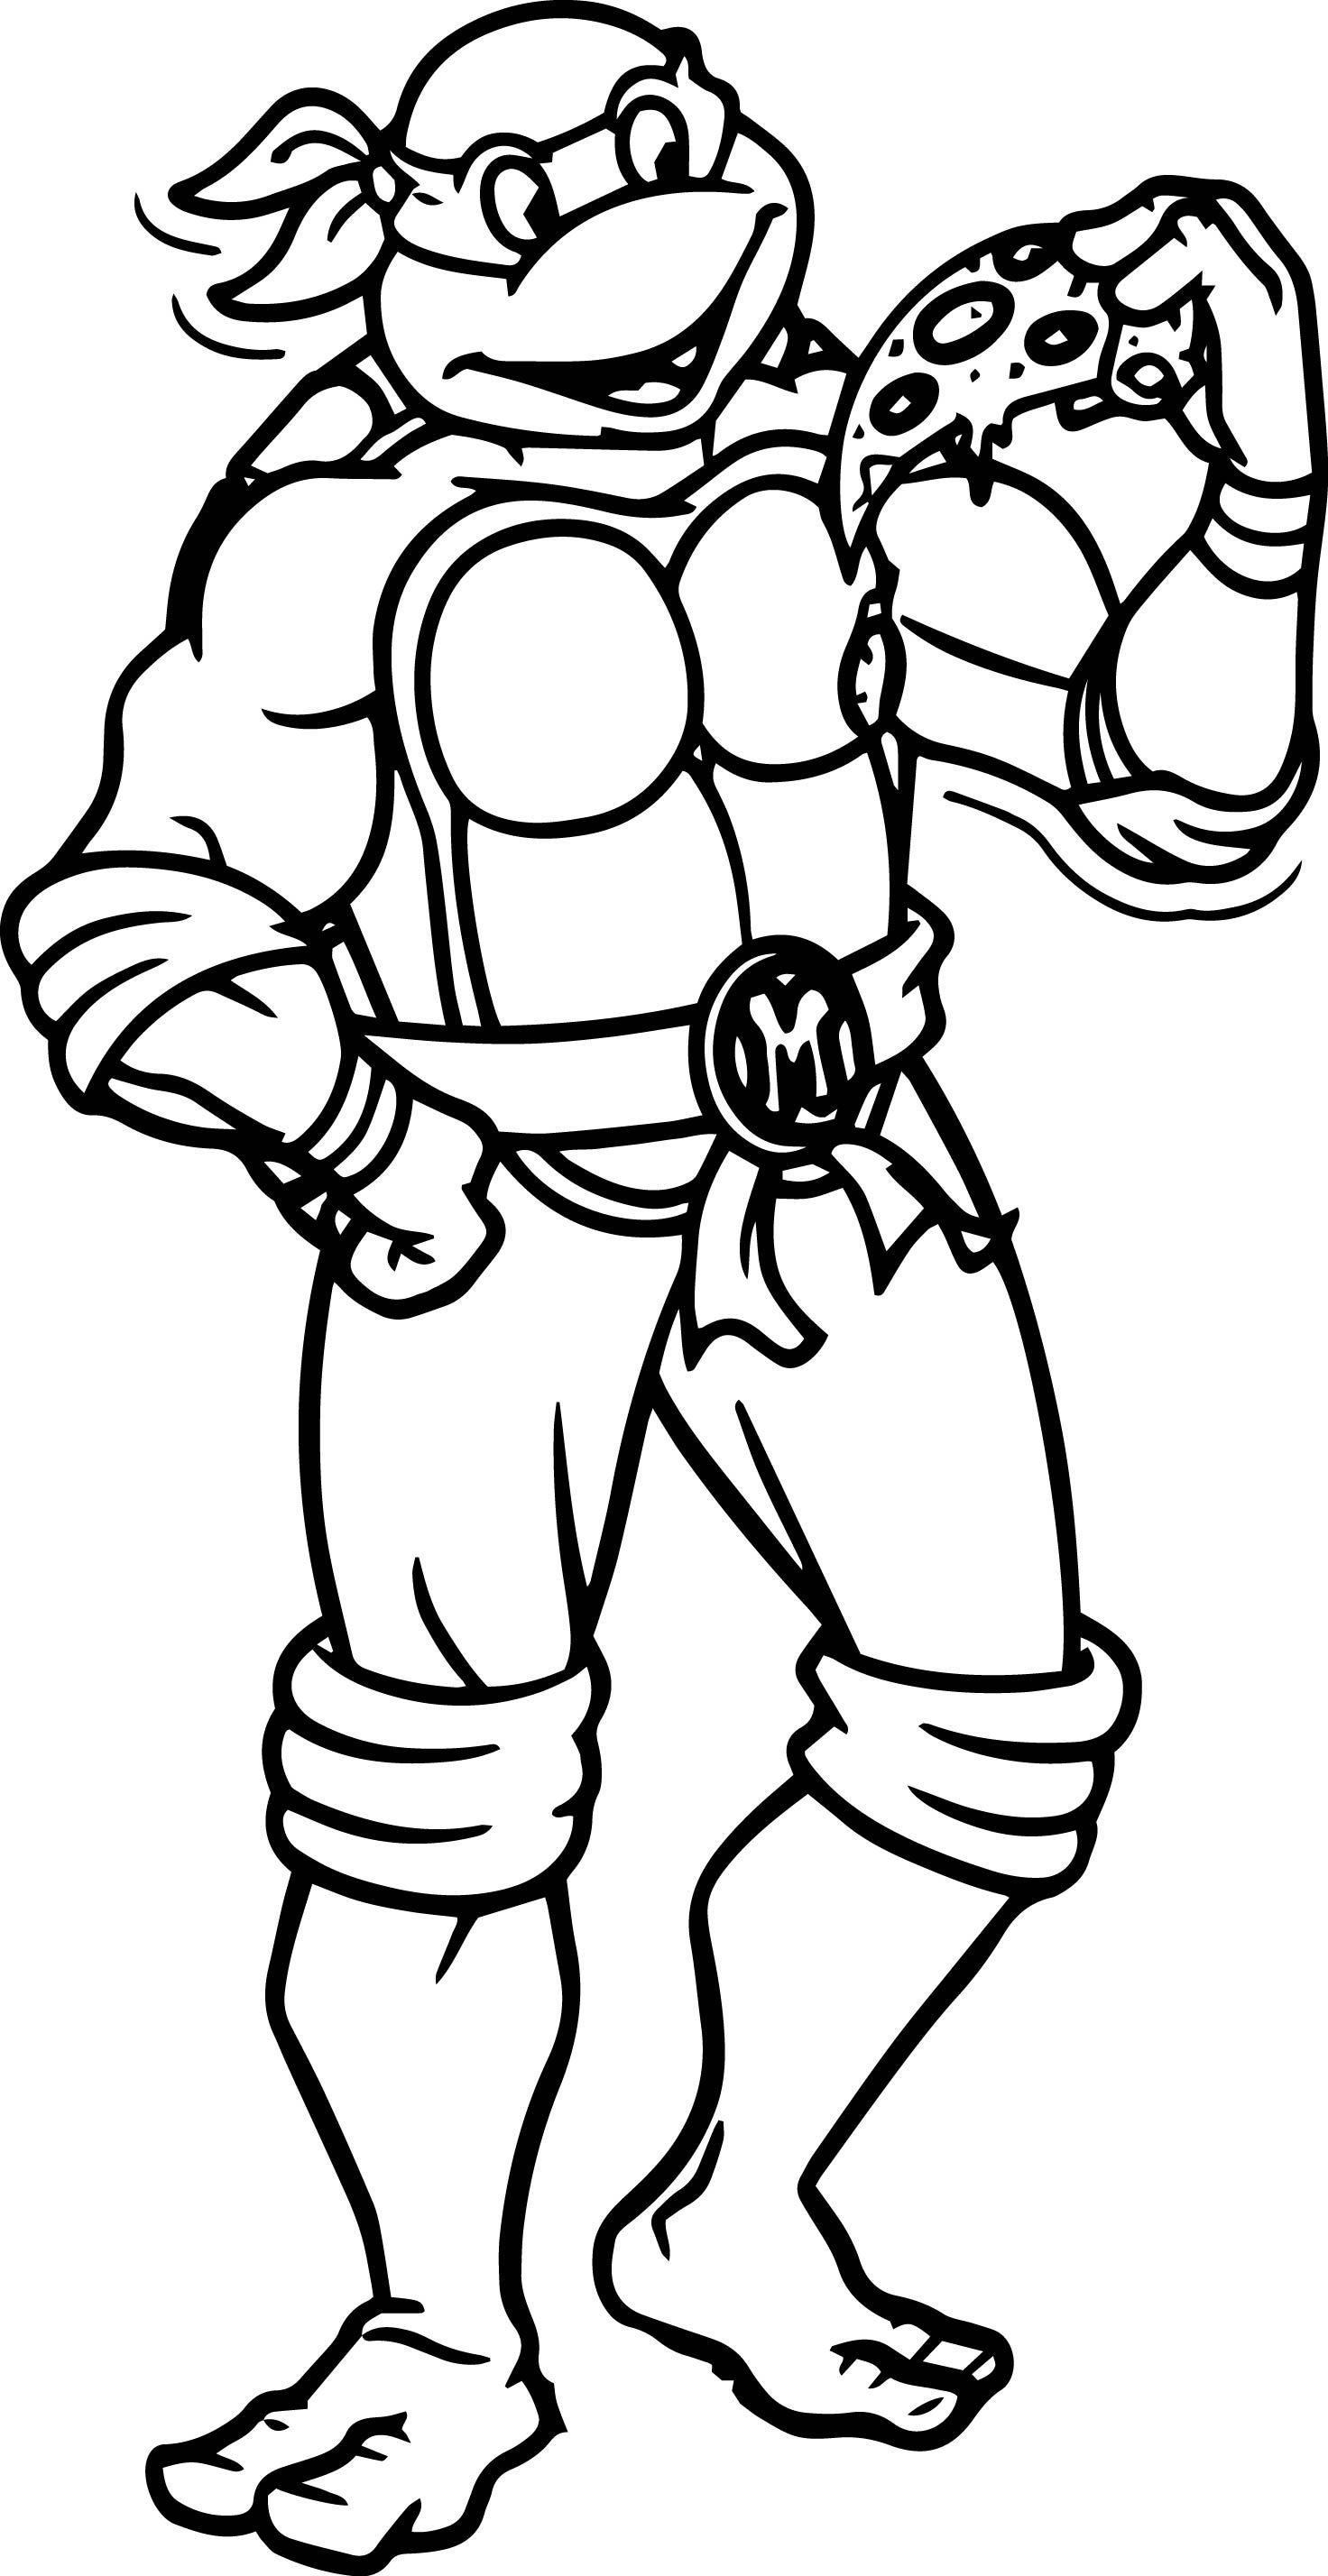 Turtle Best Eat Pizza Coloring Page Teenage Mutant Wecoloringpage Turtle Coloring Pages Superhero Coloring Pages Ninja Turtle Coloring Pages